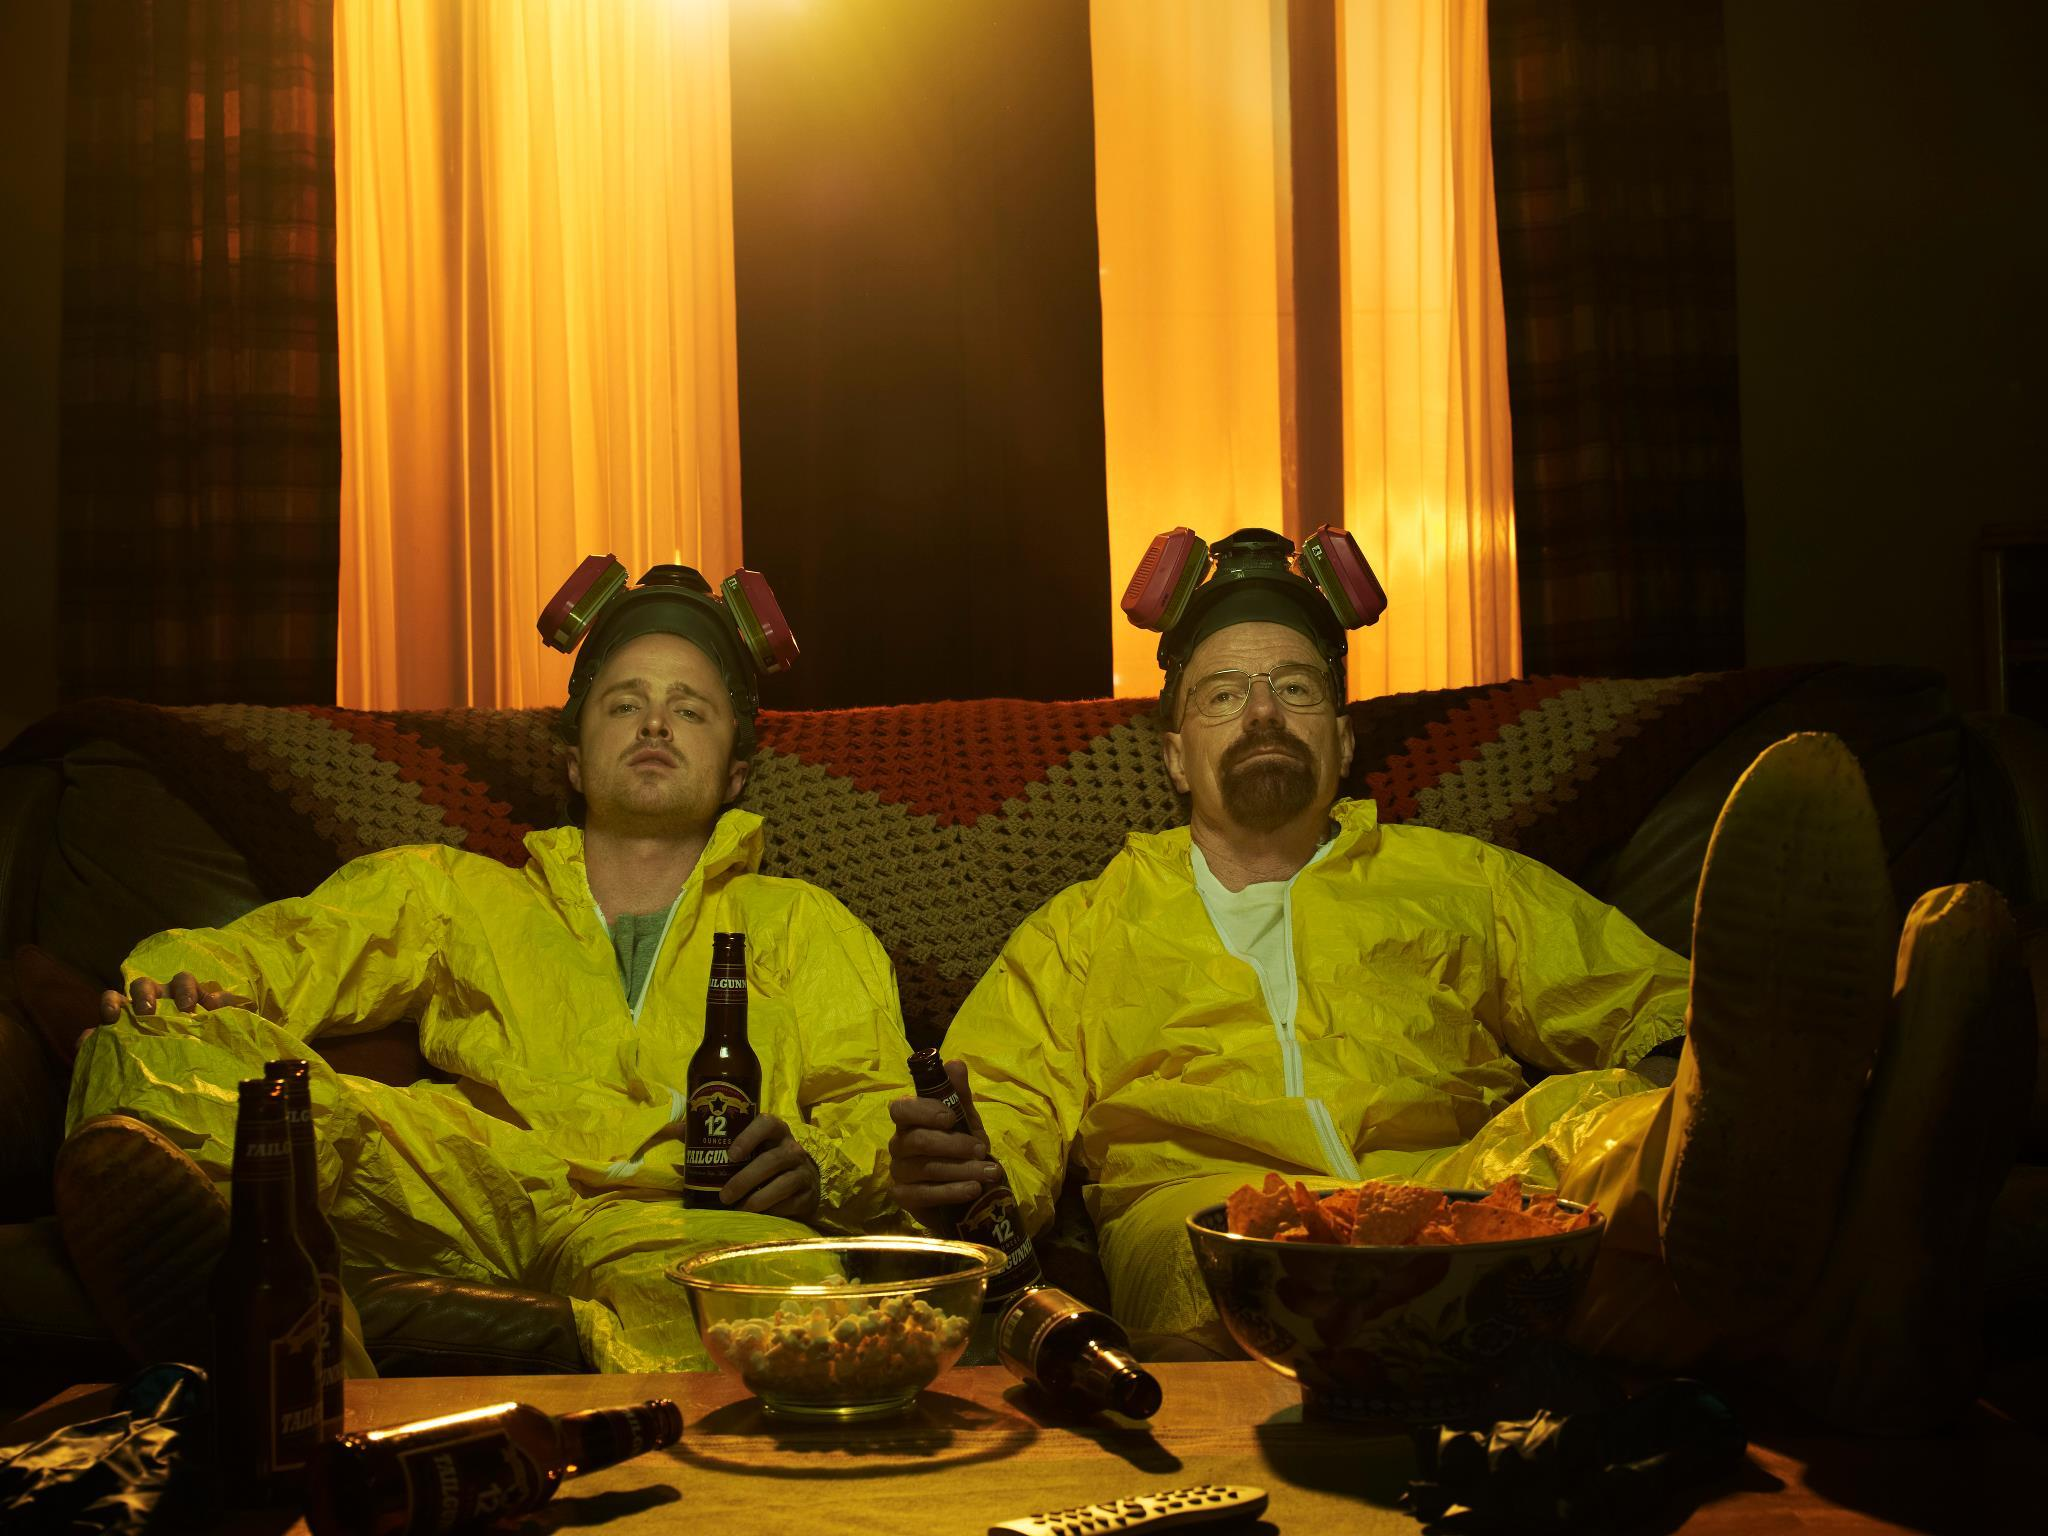 Breaking Bad HD Wallpapers, Pictures, Image